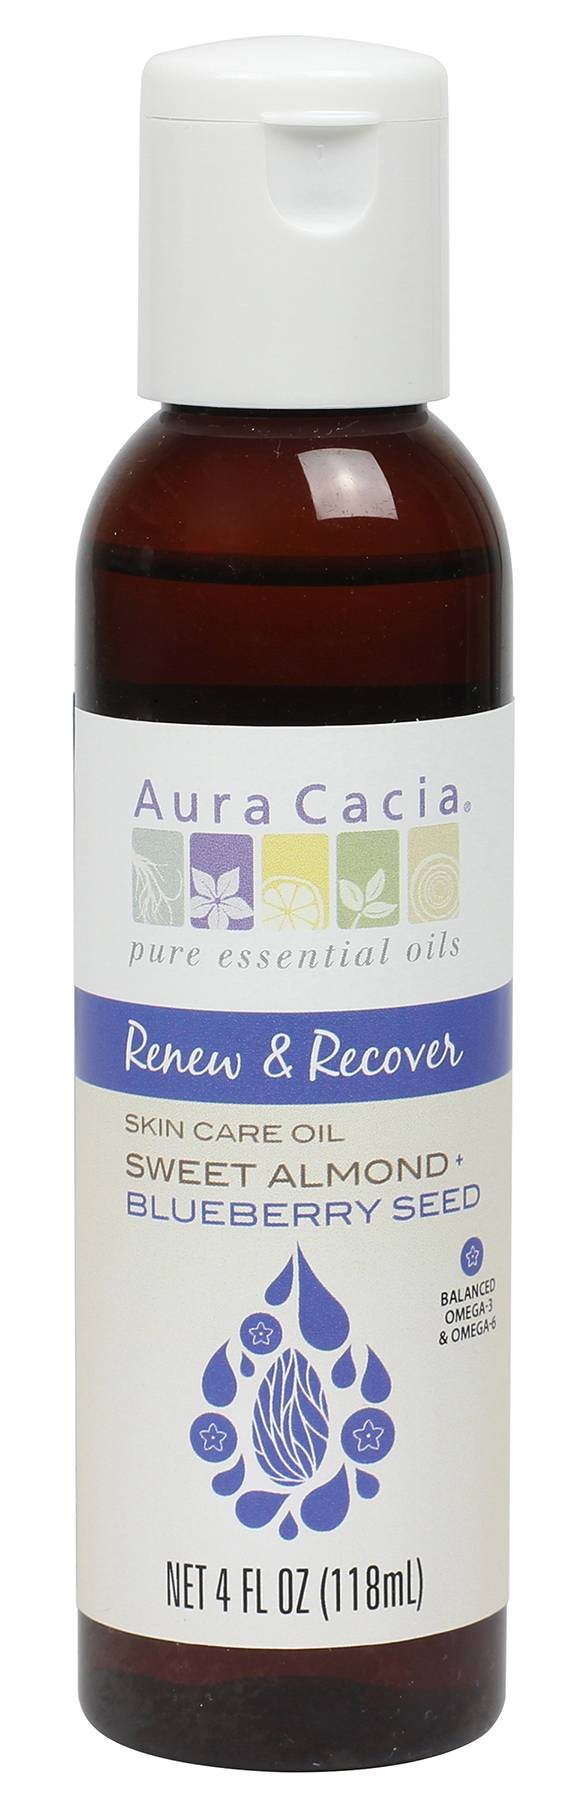 Aura Cacia Sweet Almond + Blueberry Seed Oil - $12.49 - Almonds + Blueberries ? doesn?t it just sound delicious? Sweet almond oil is loaded with Omega-9, and Blueberry seed oil is balanced in Omega-3 and Omega-6. This highly emollient oil helps reduce flaking and is perfect to protect from the cold weather.(Photo: Courtesy www.auracacia.com)